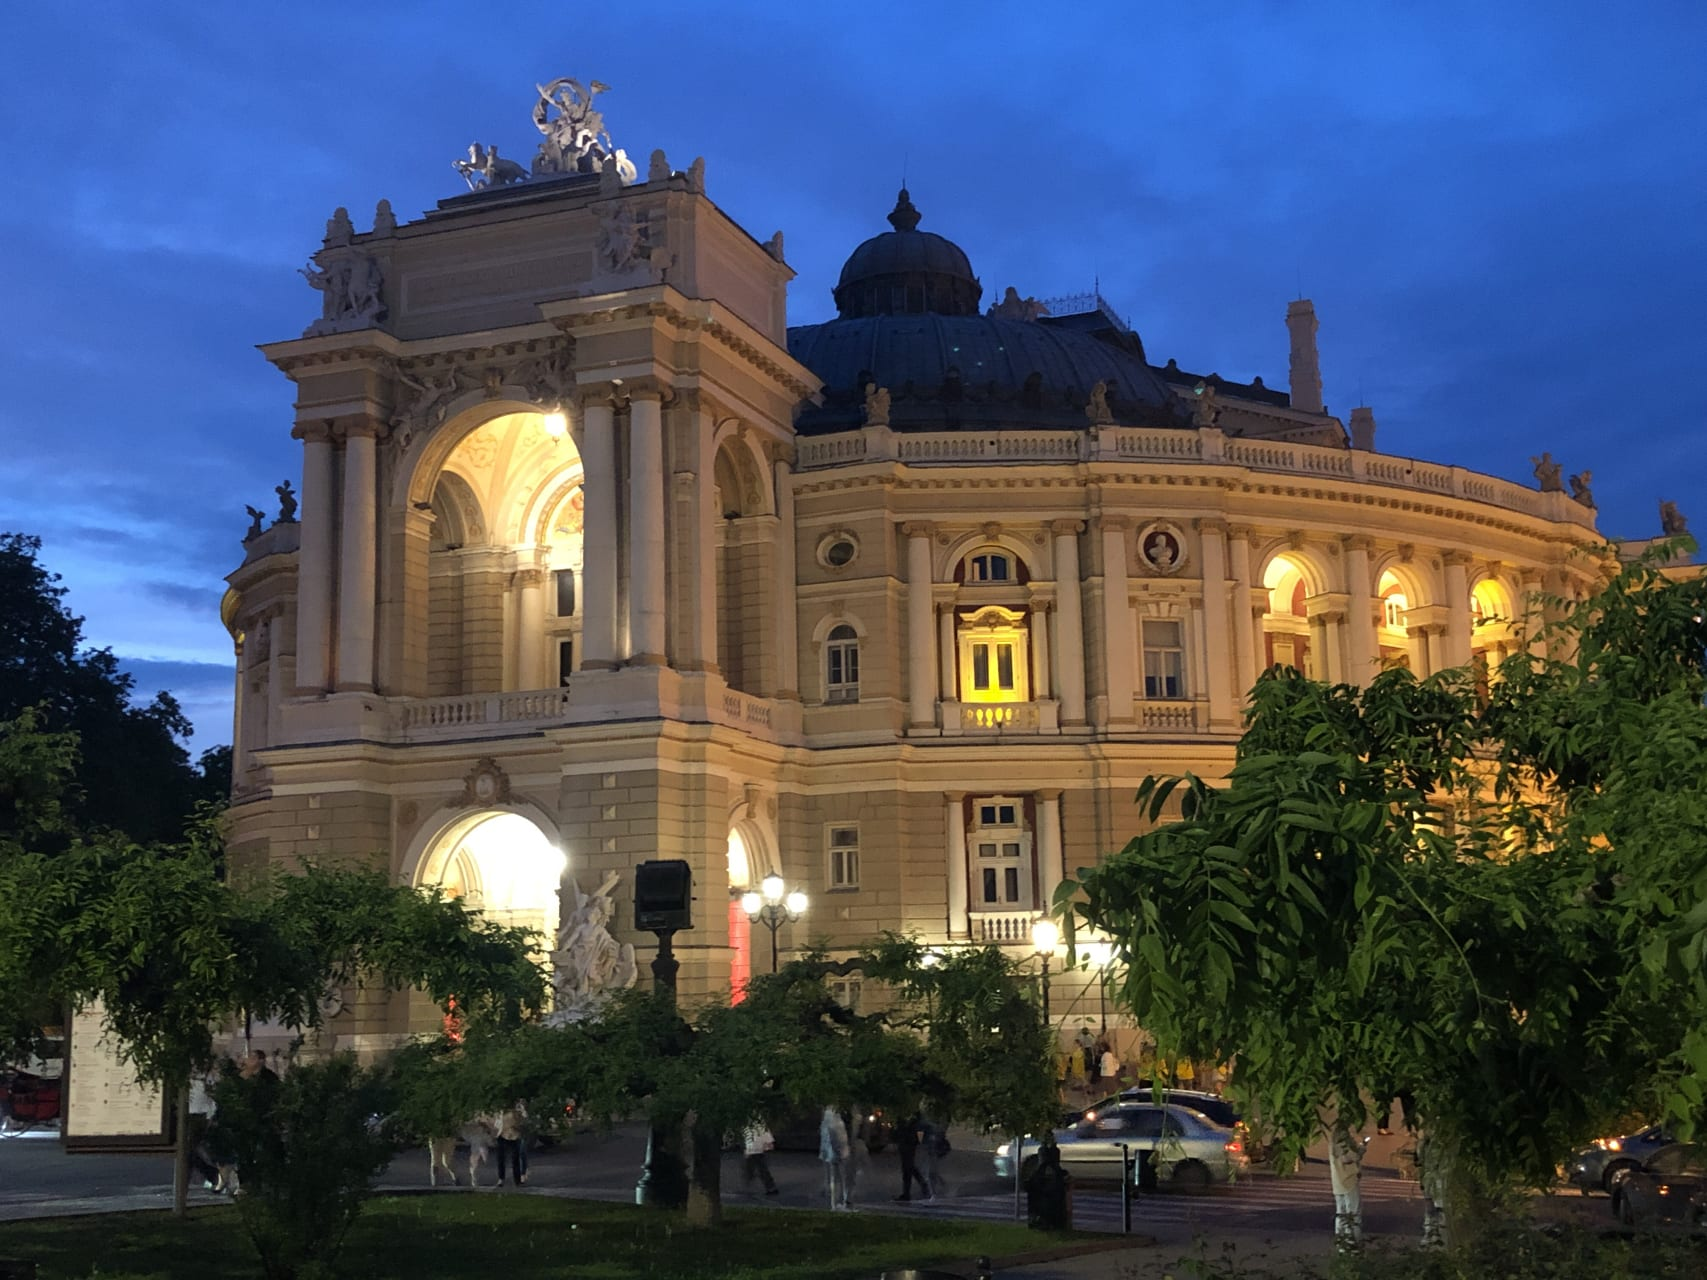 Odessa - One-time Event! Odessa After Dark and Classical Music Concert on the Potemkin Steps